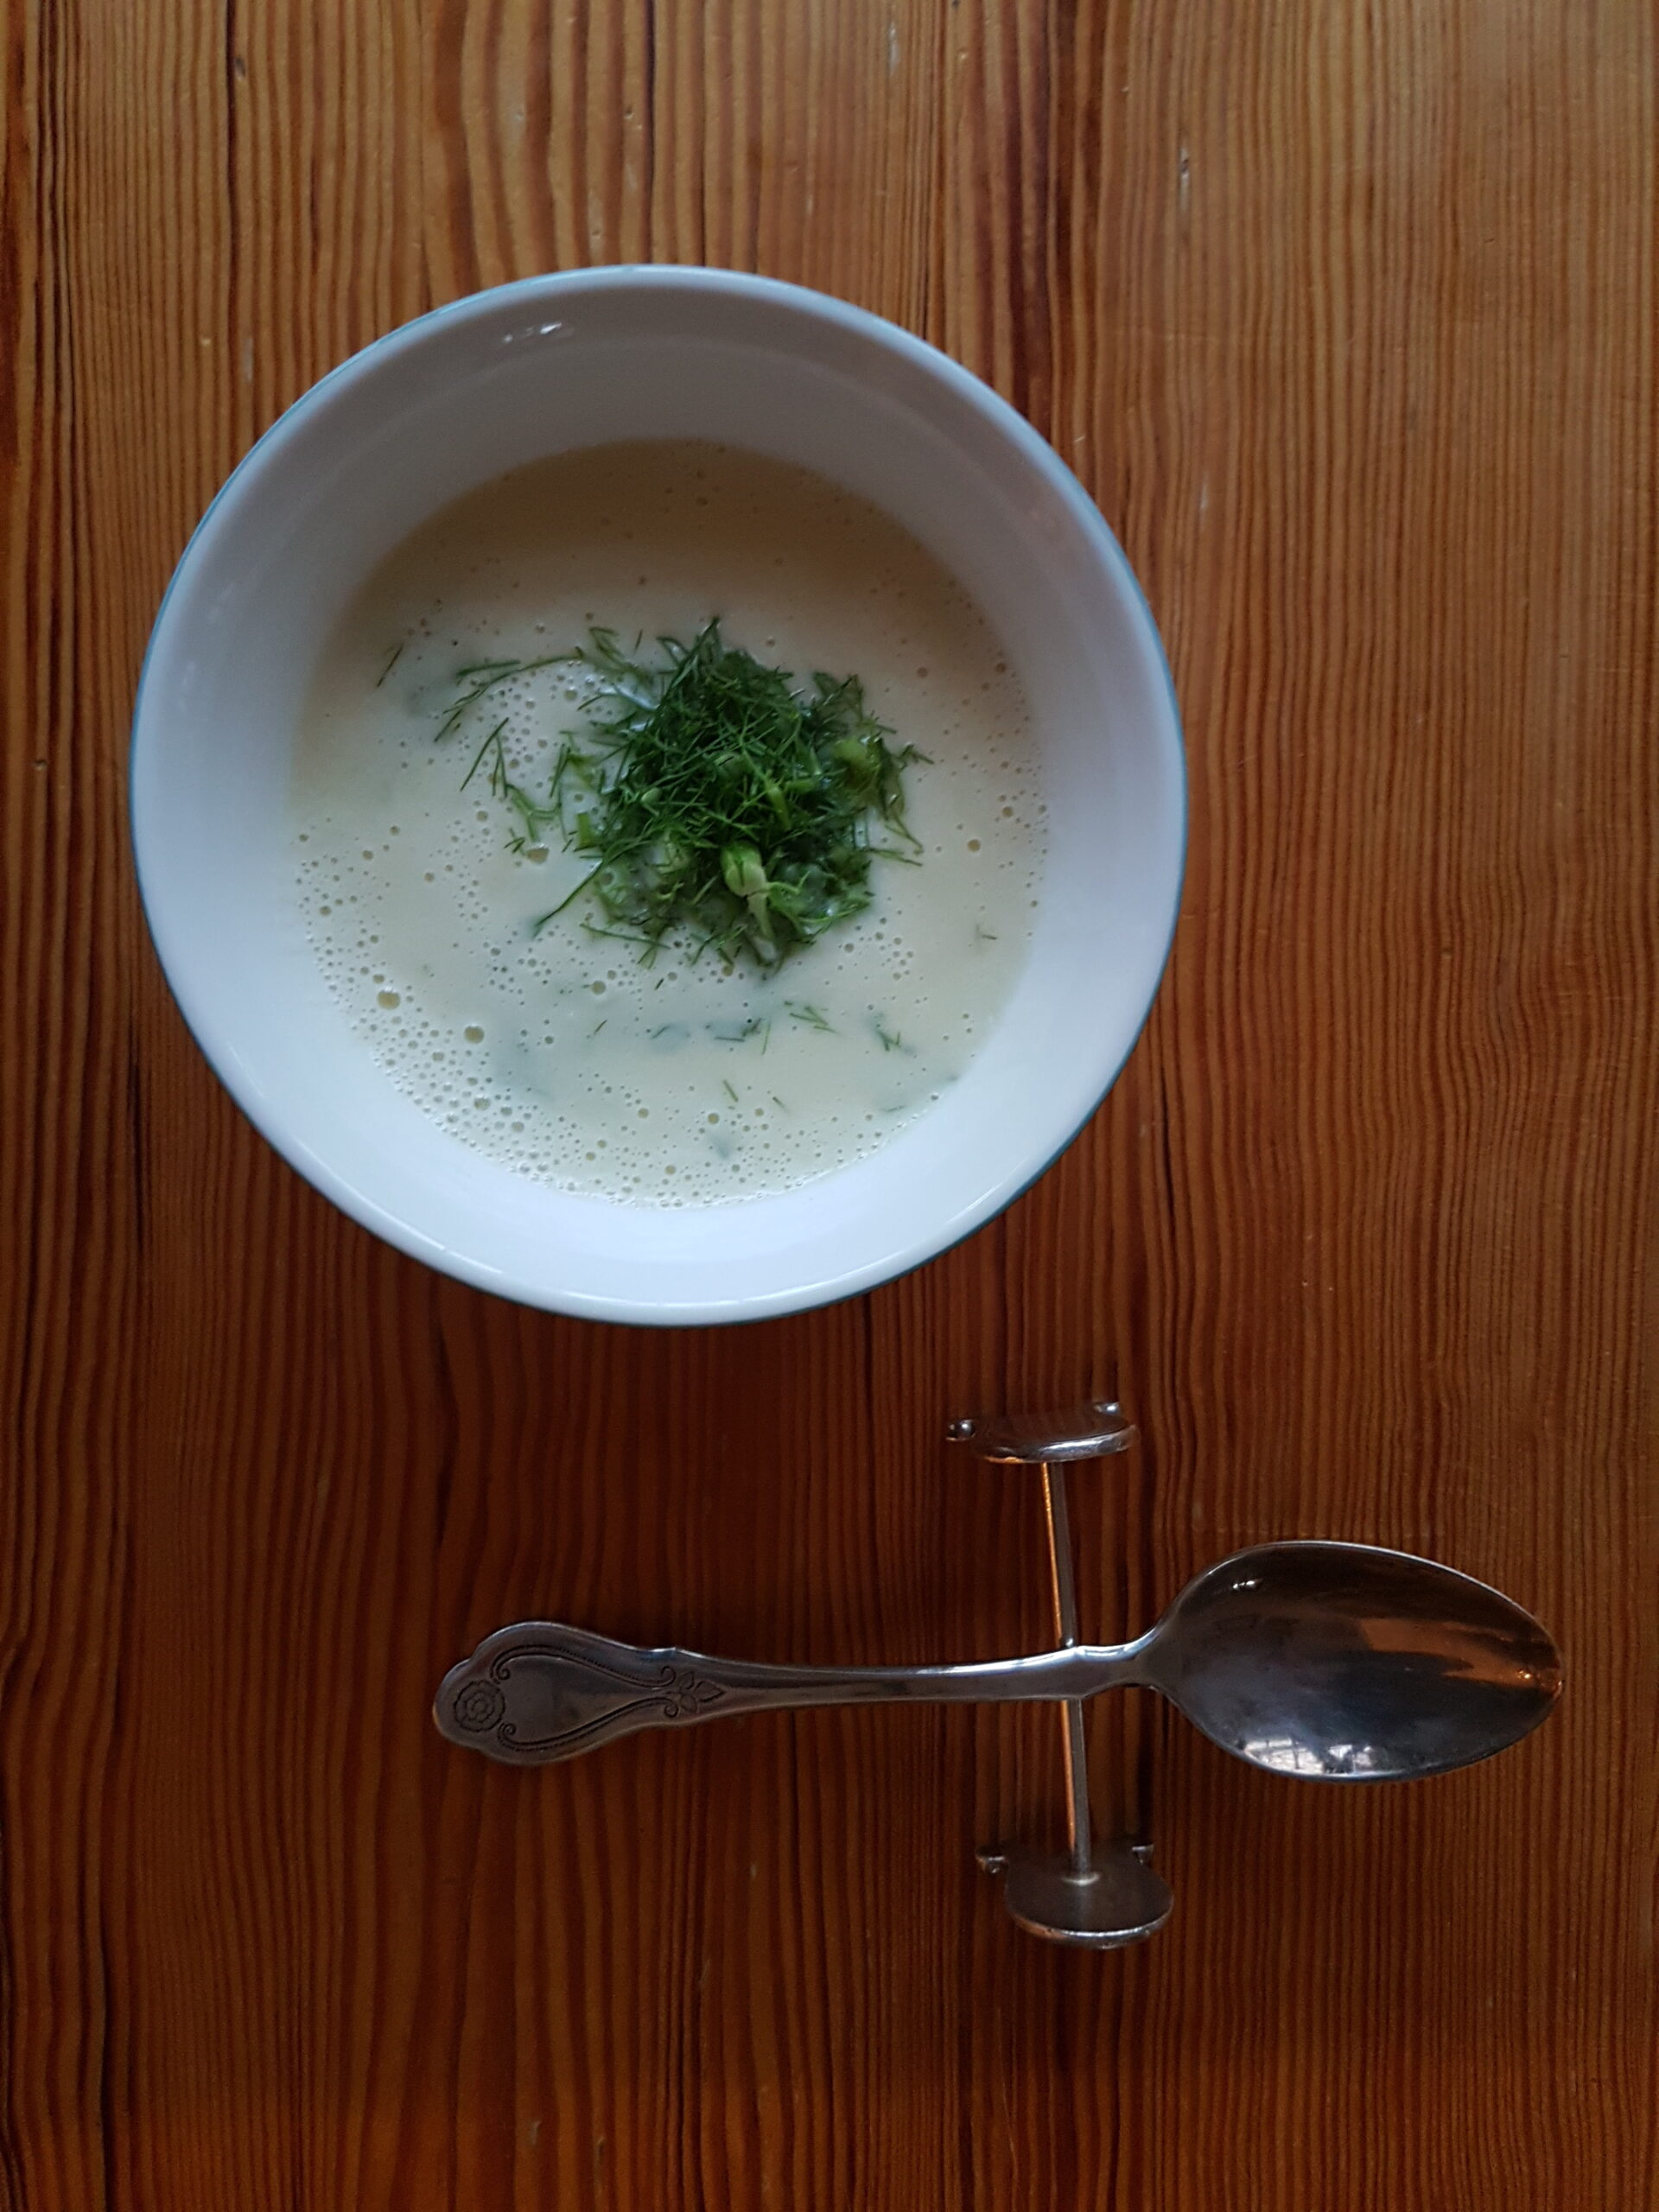 Fenchelcremesuppe